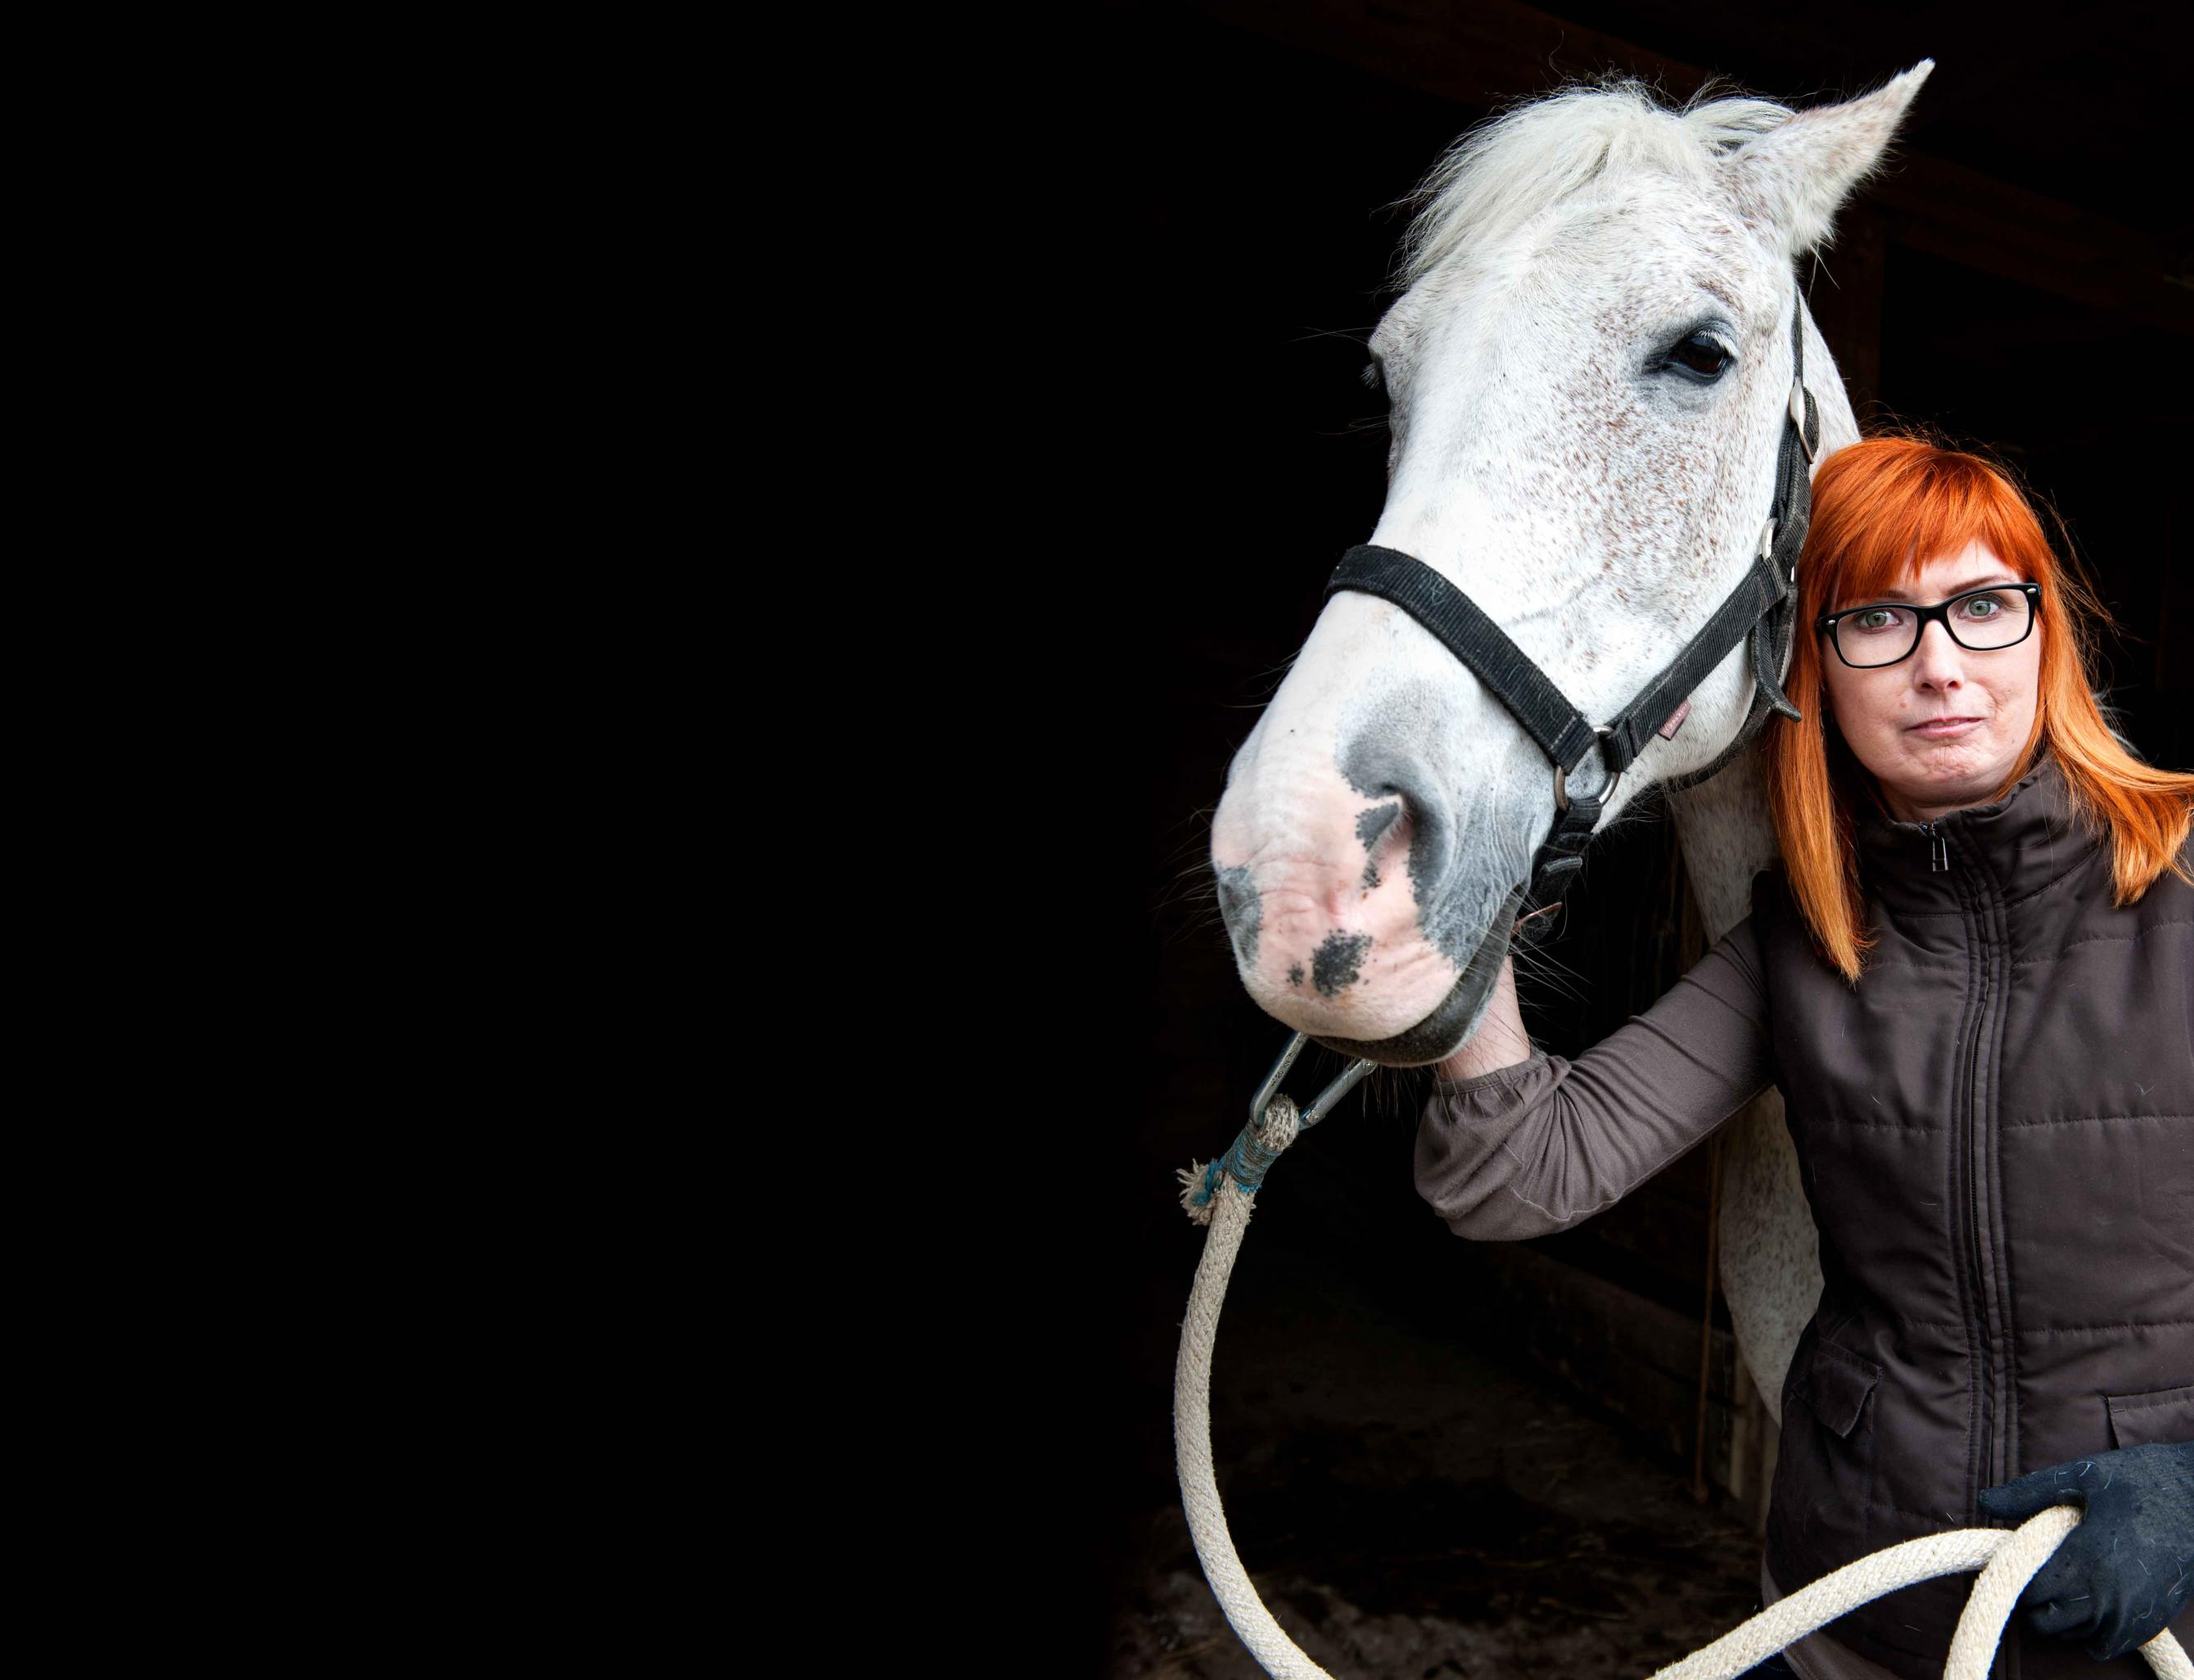 Anna with her horse